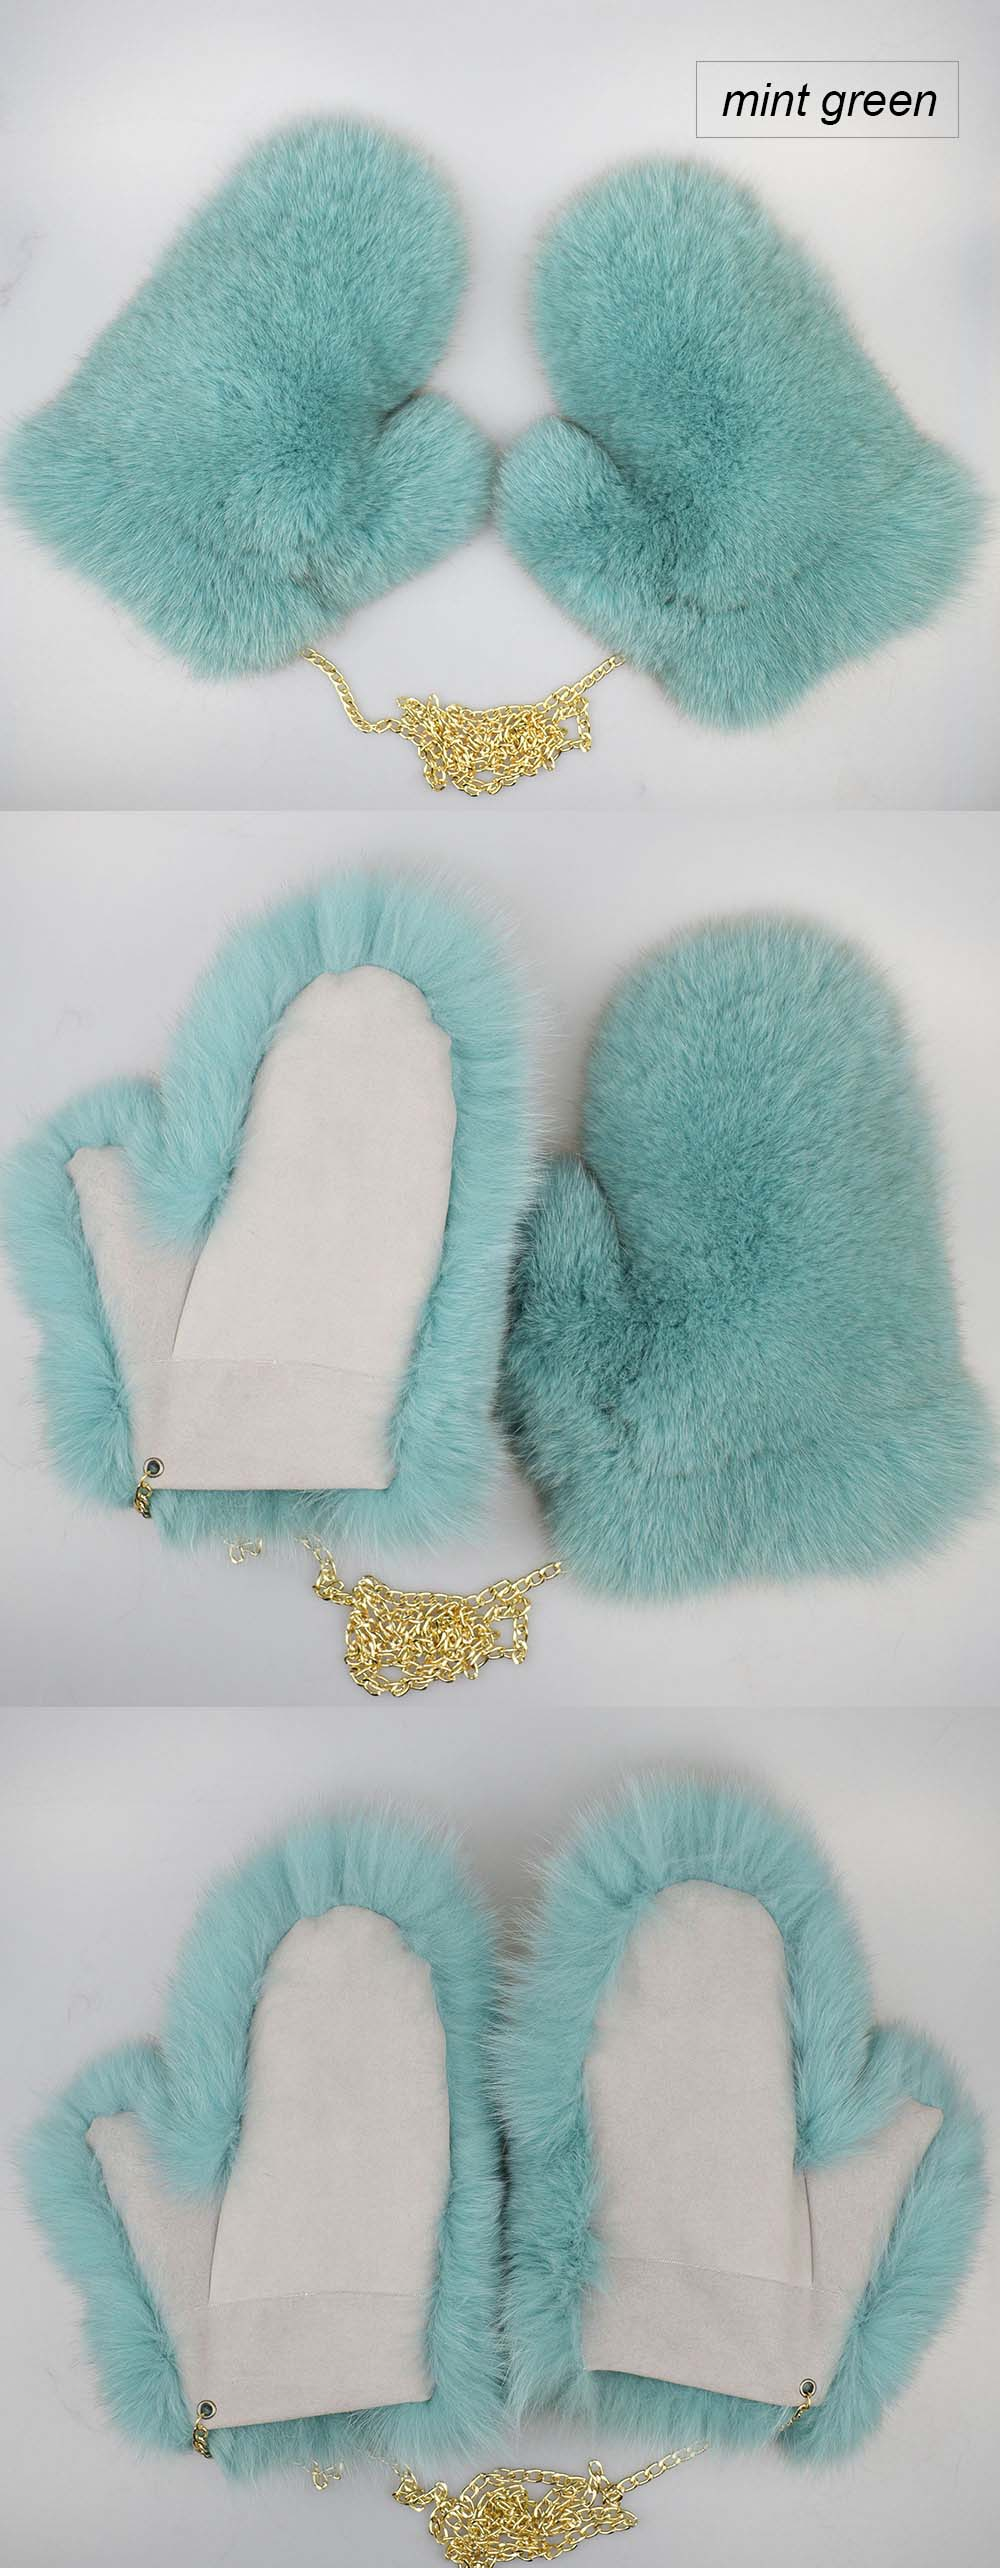 fox fur gloves color mint green